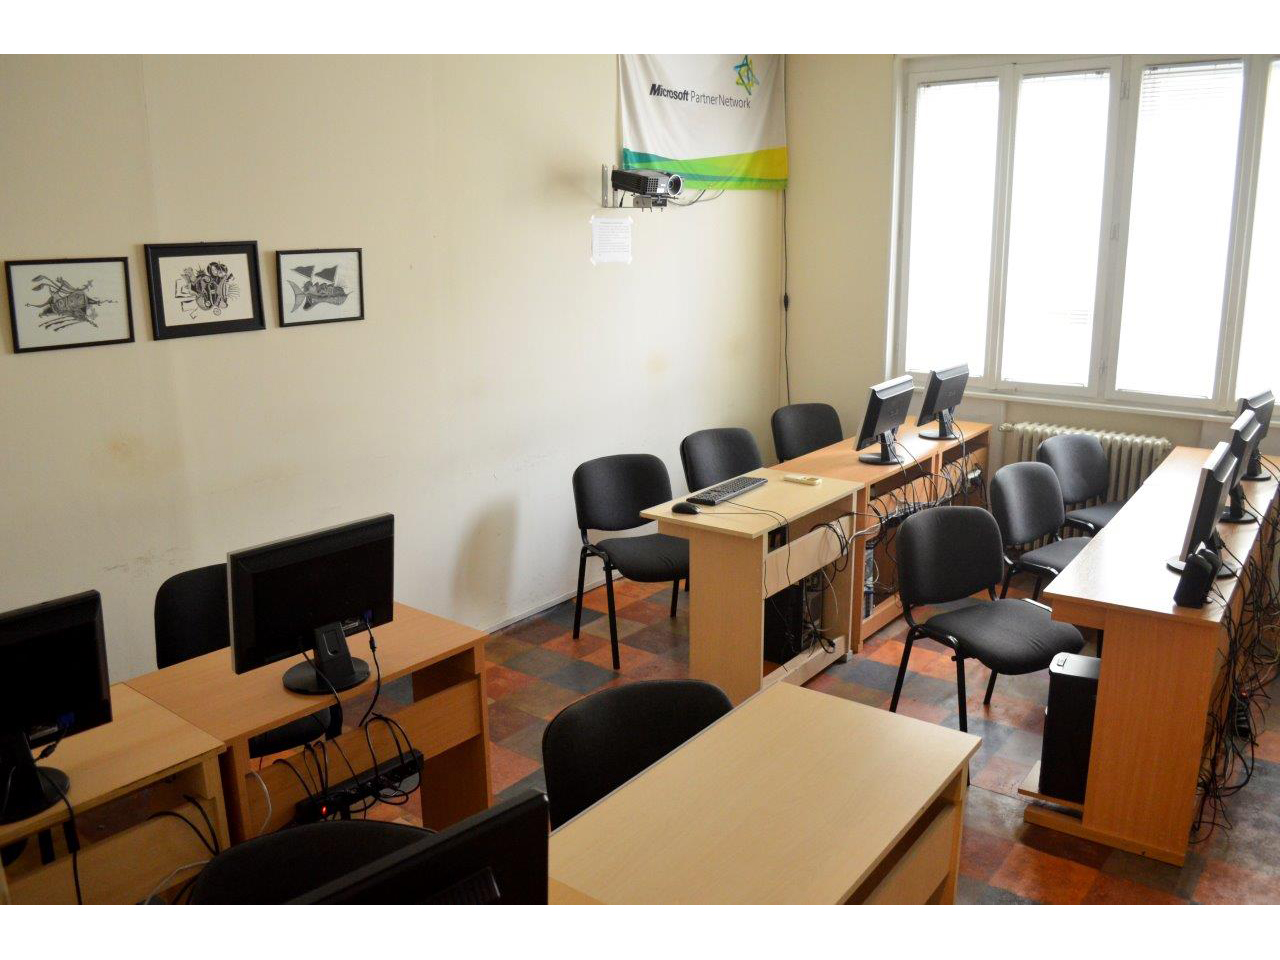 SOFTLINE EDUCATION Foreign languages schools Beograd